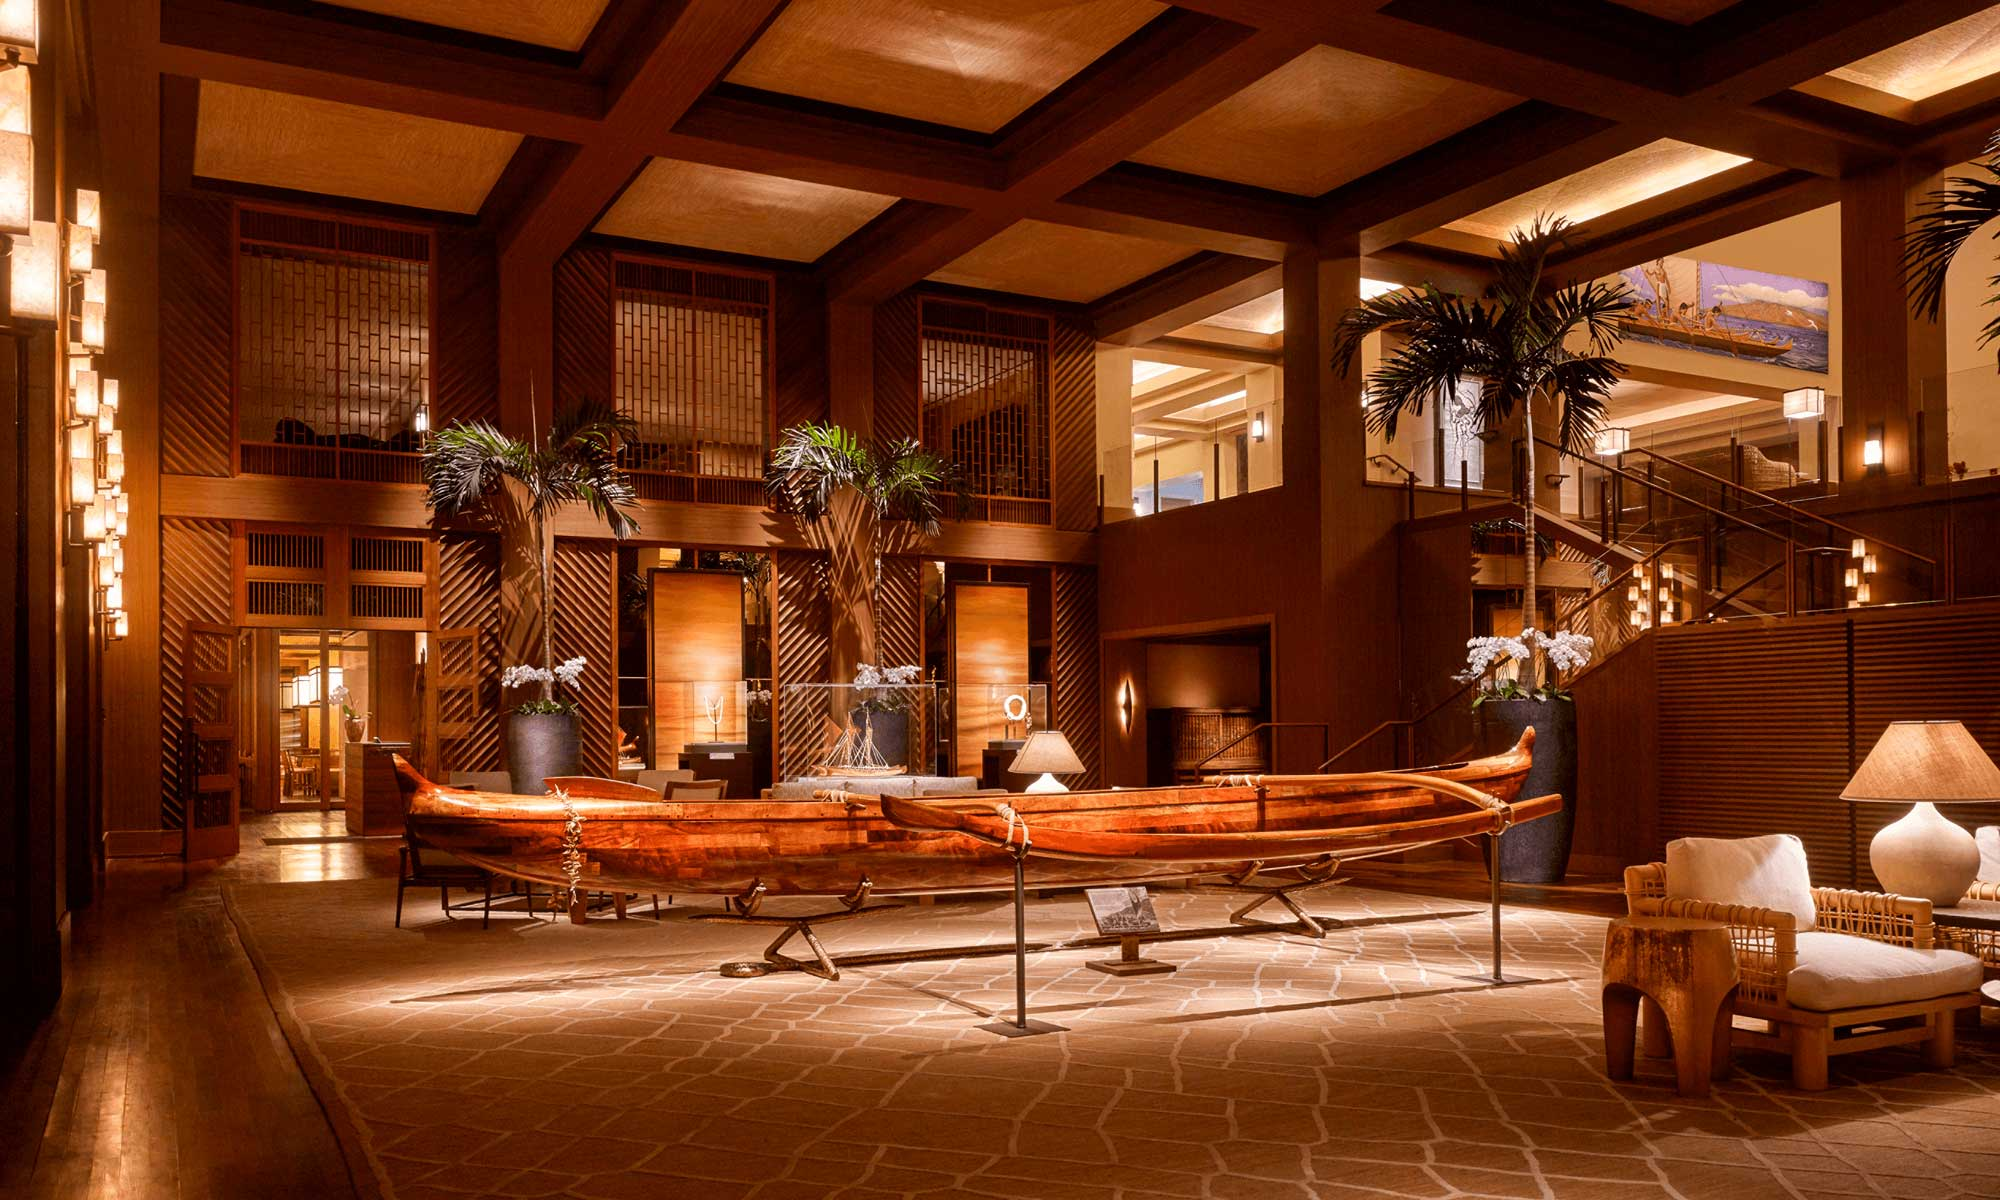 The Four Seasons Resort, Lanai - Main lobby Architecture